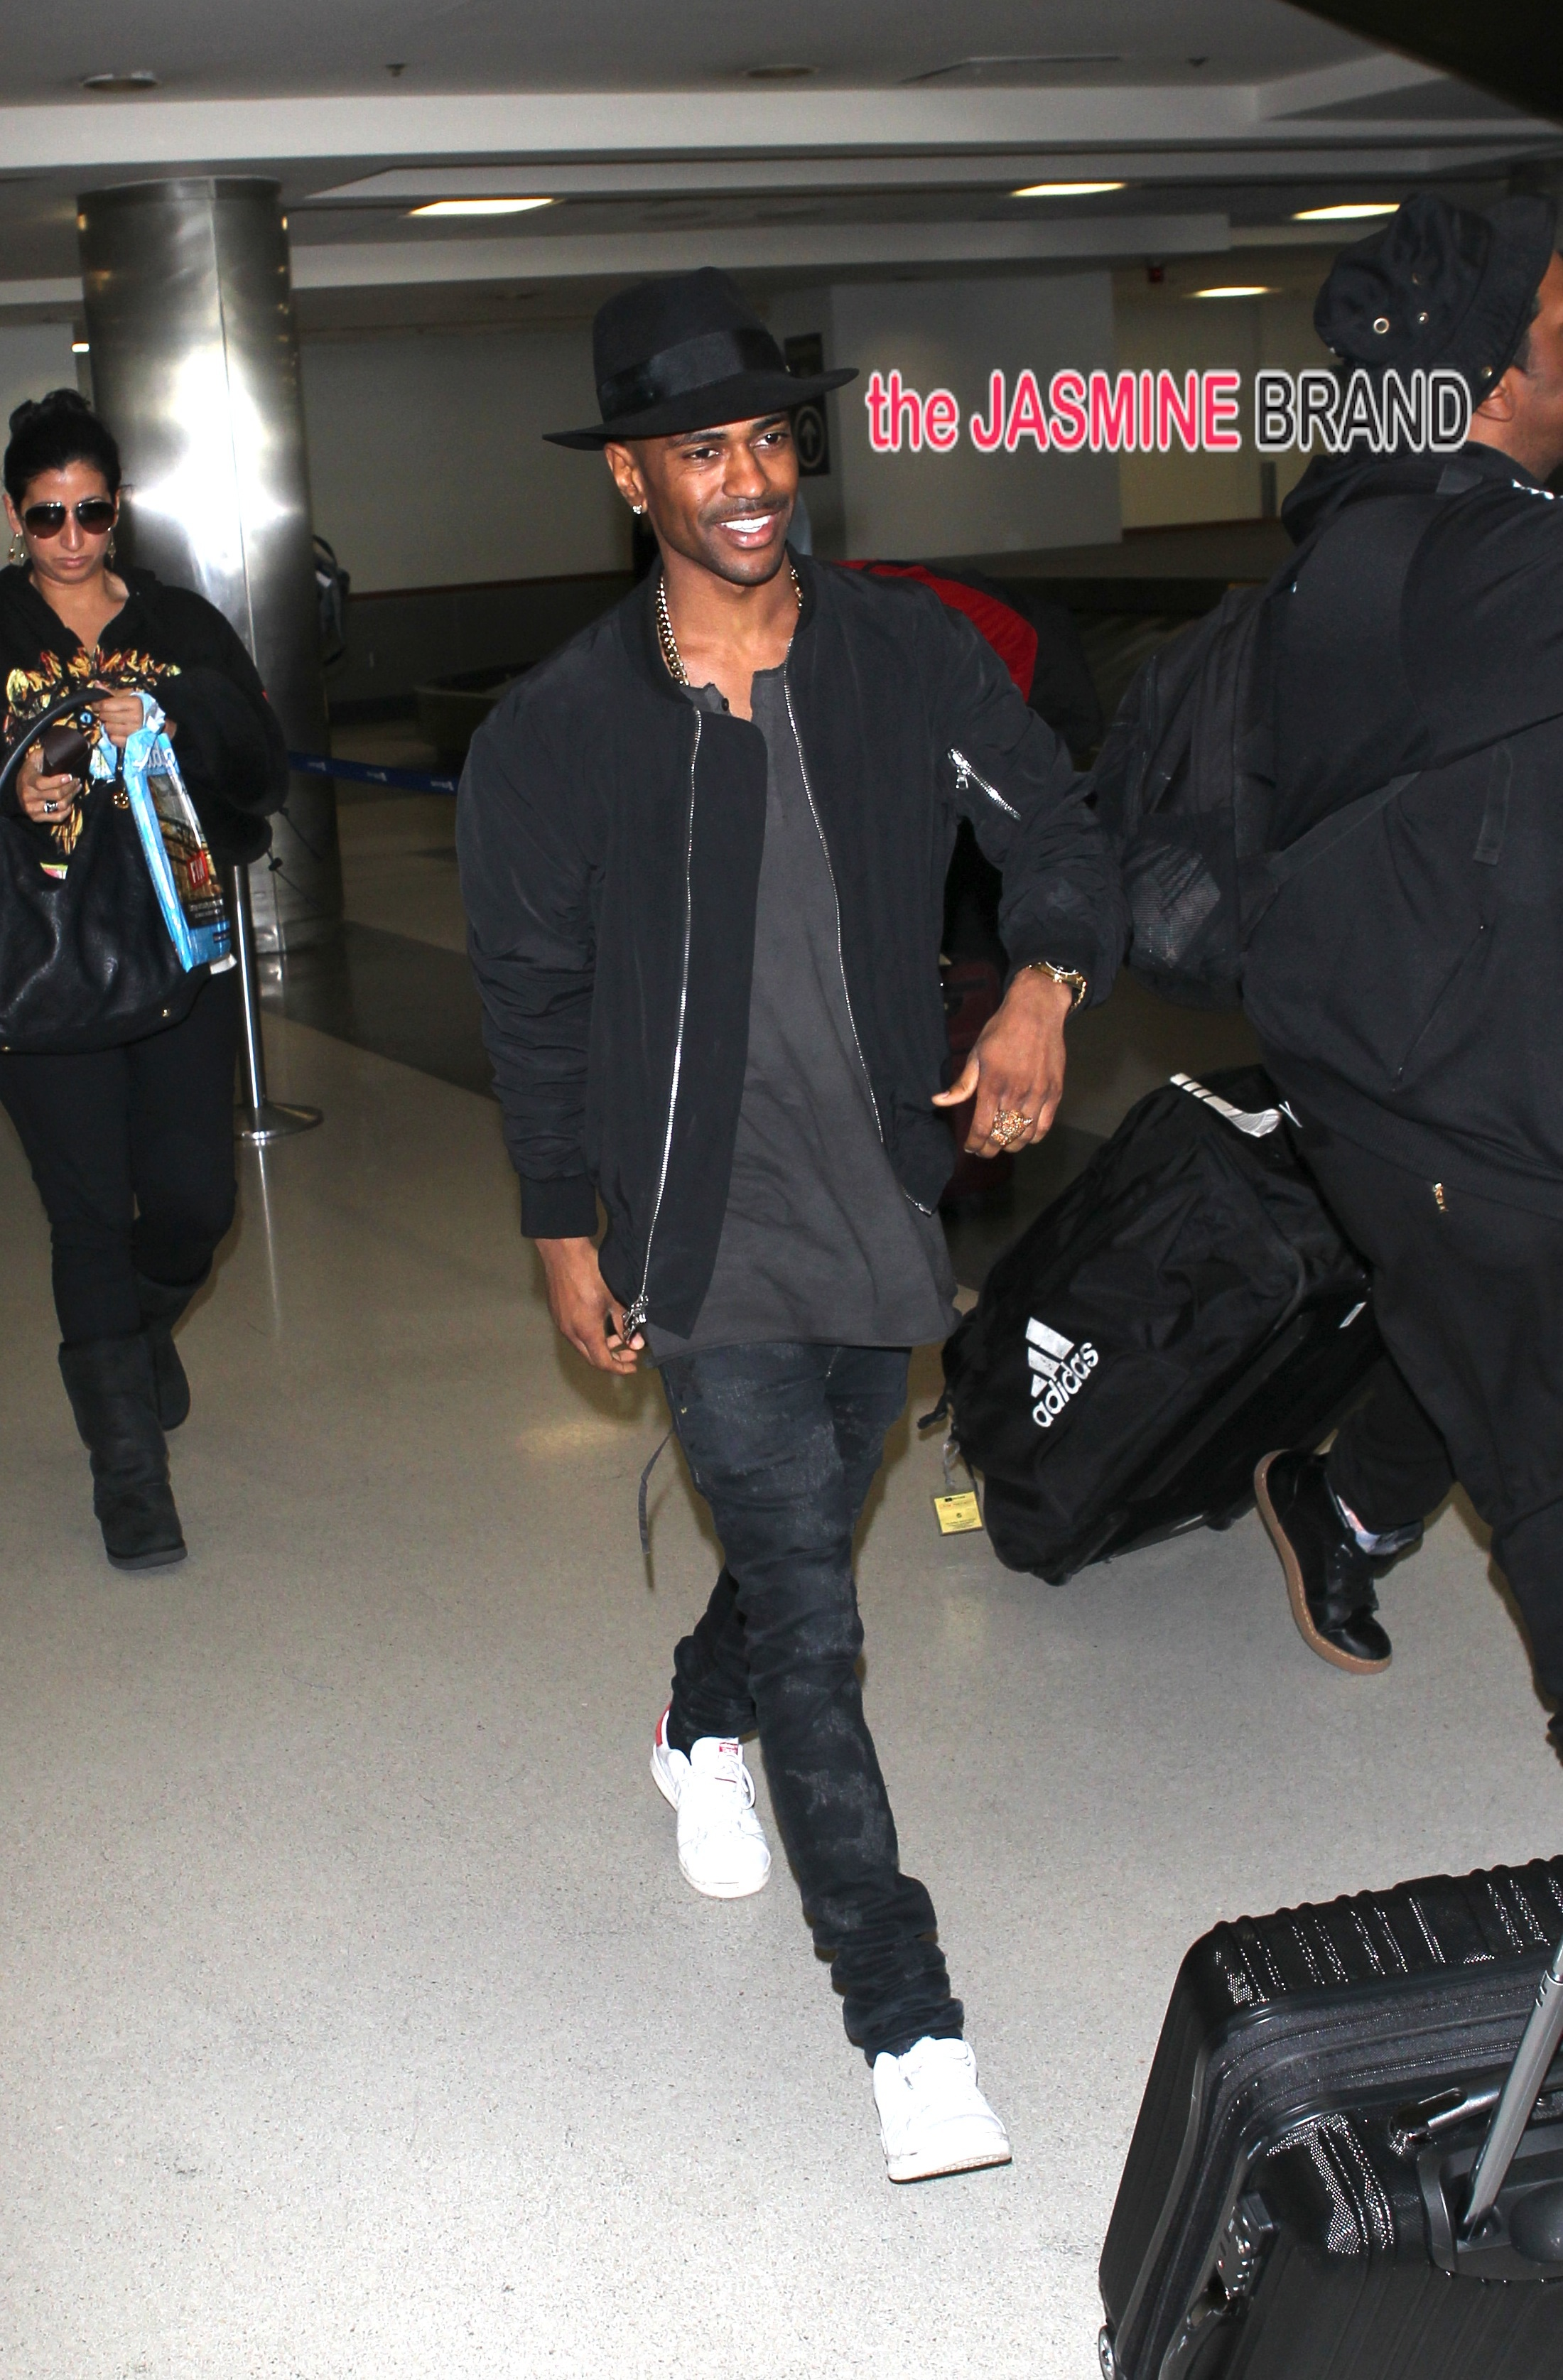 Big Sean's first sighting after his break up with Naya Rivera at LAX